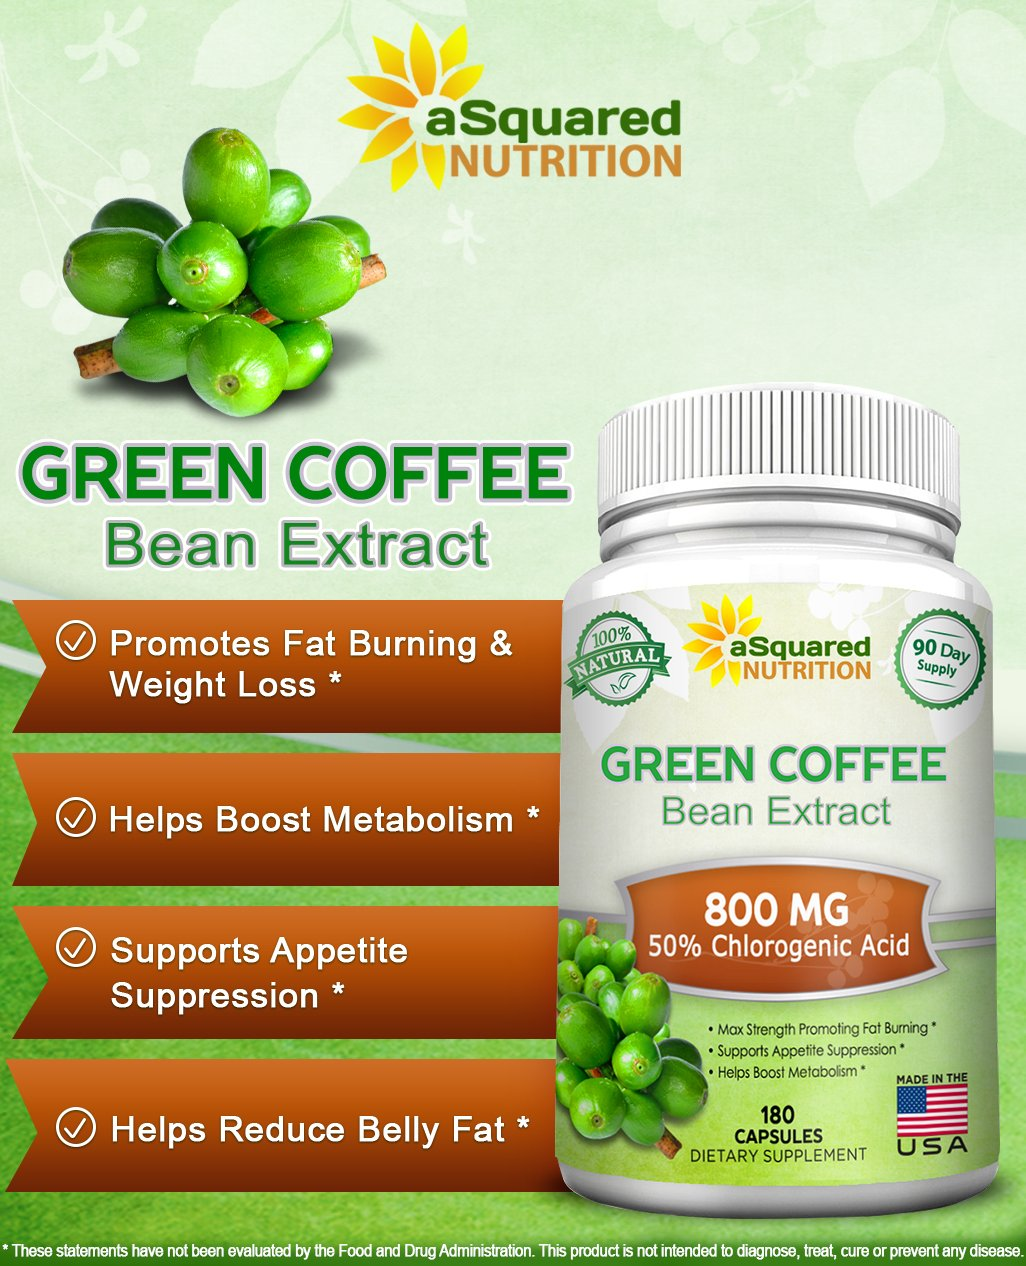 100% Pure Green Coffee Bean Extract - 180 Capsules - Max Strength Natural GCA Antioxidant Cleanse for Weight Loss, 800mg w/ 50% Chlorogenic Acid per Pill, 1600mg Daily Supplement, Healthy Fat Burner by aSquared Nutrition (Image #2)